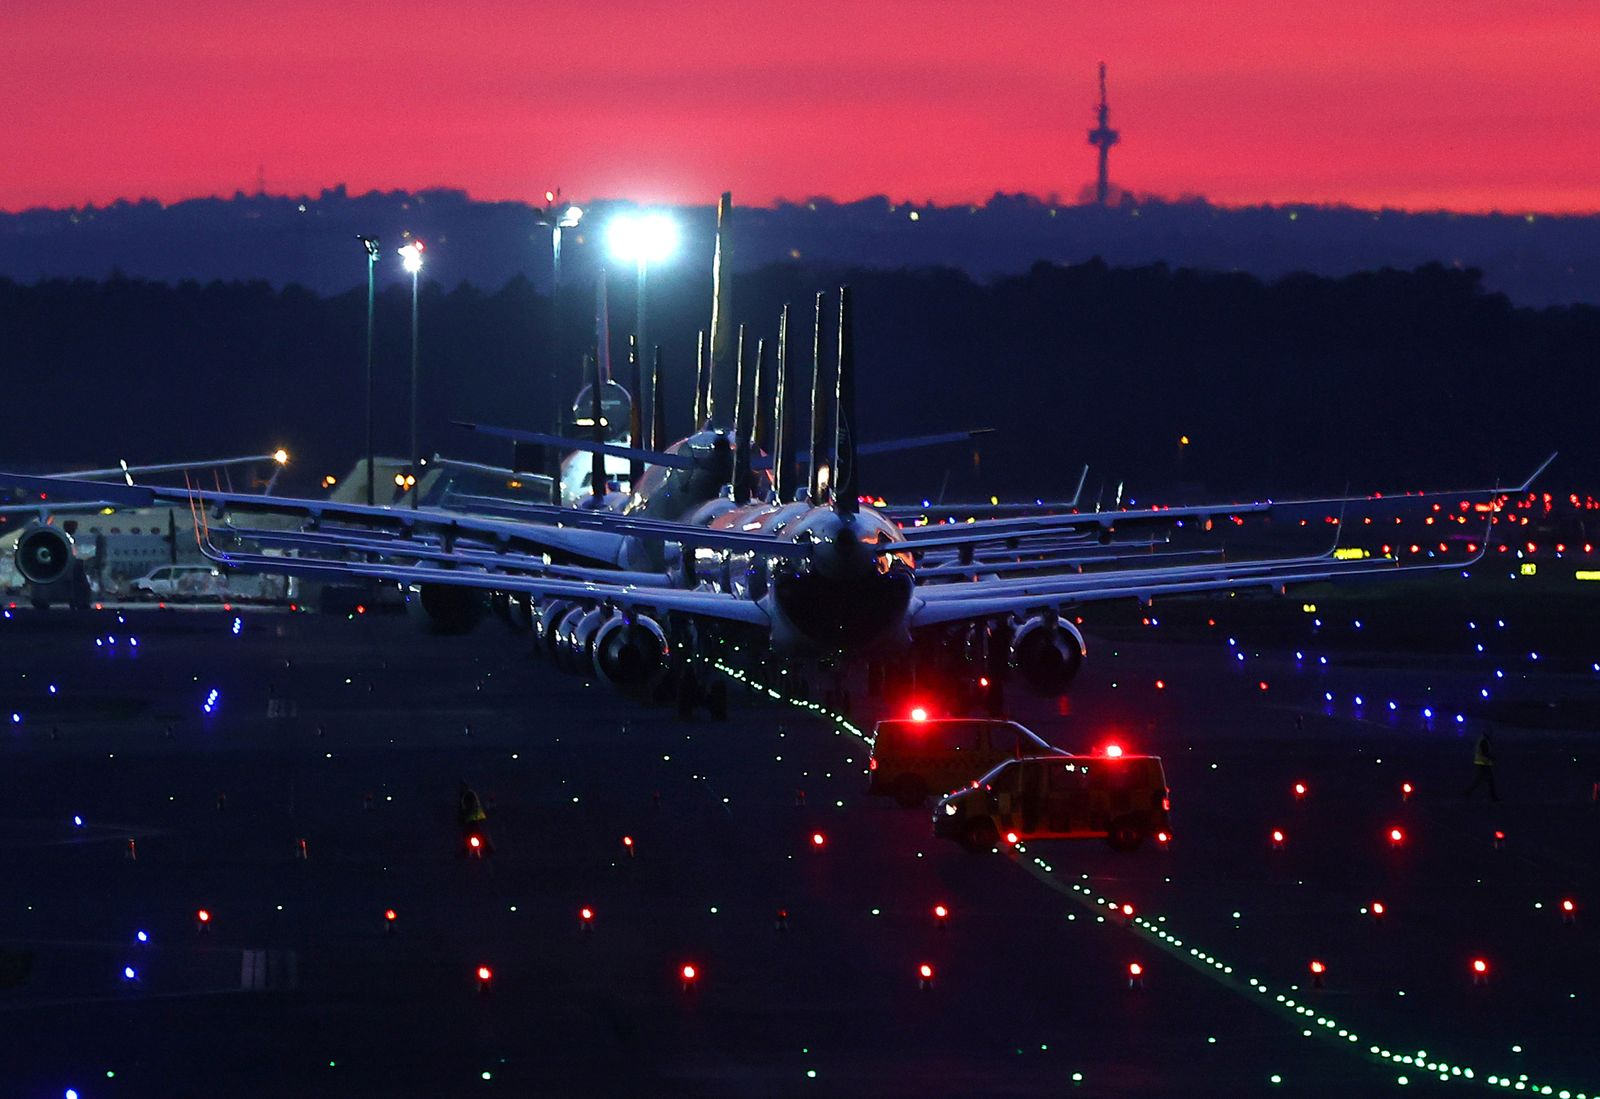 Air planes of German carrier Lufthansa are parked at the airport in Frankfurt